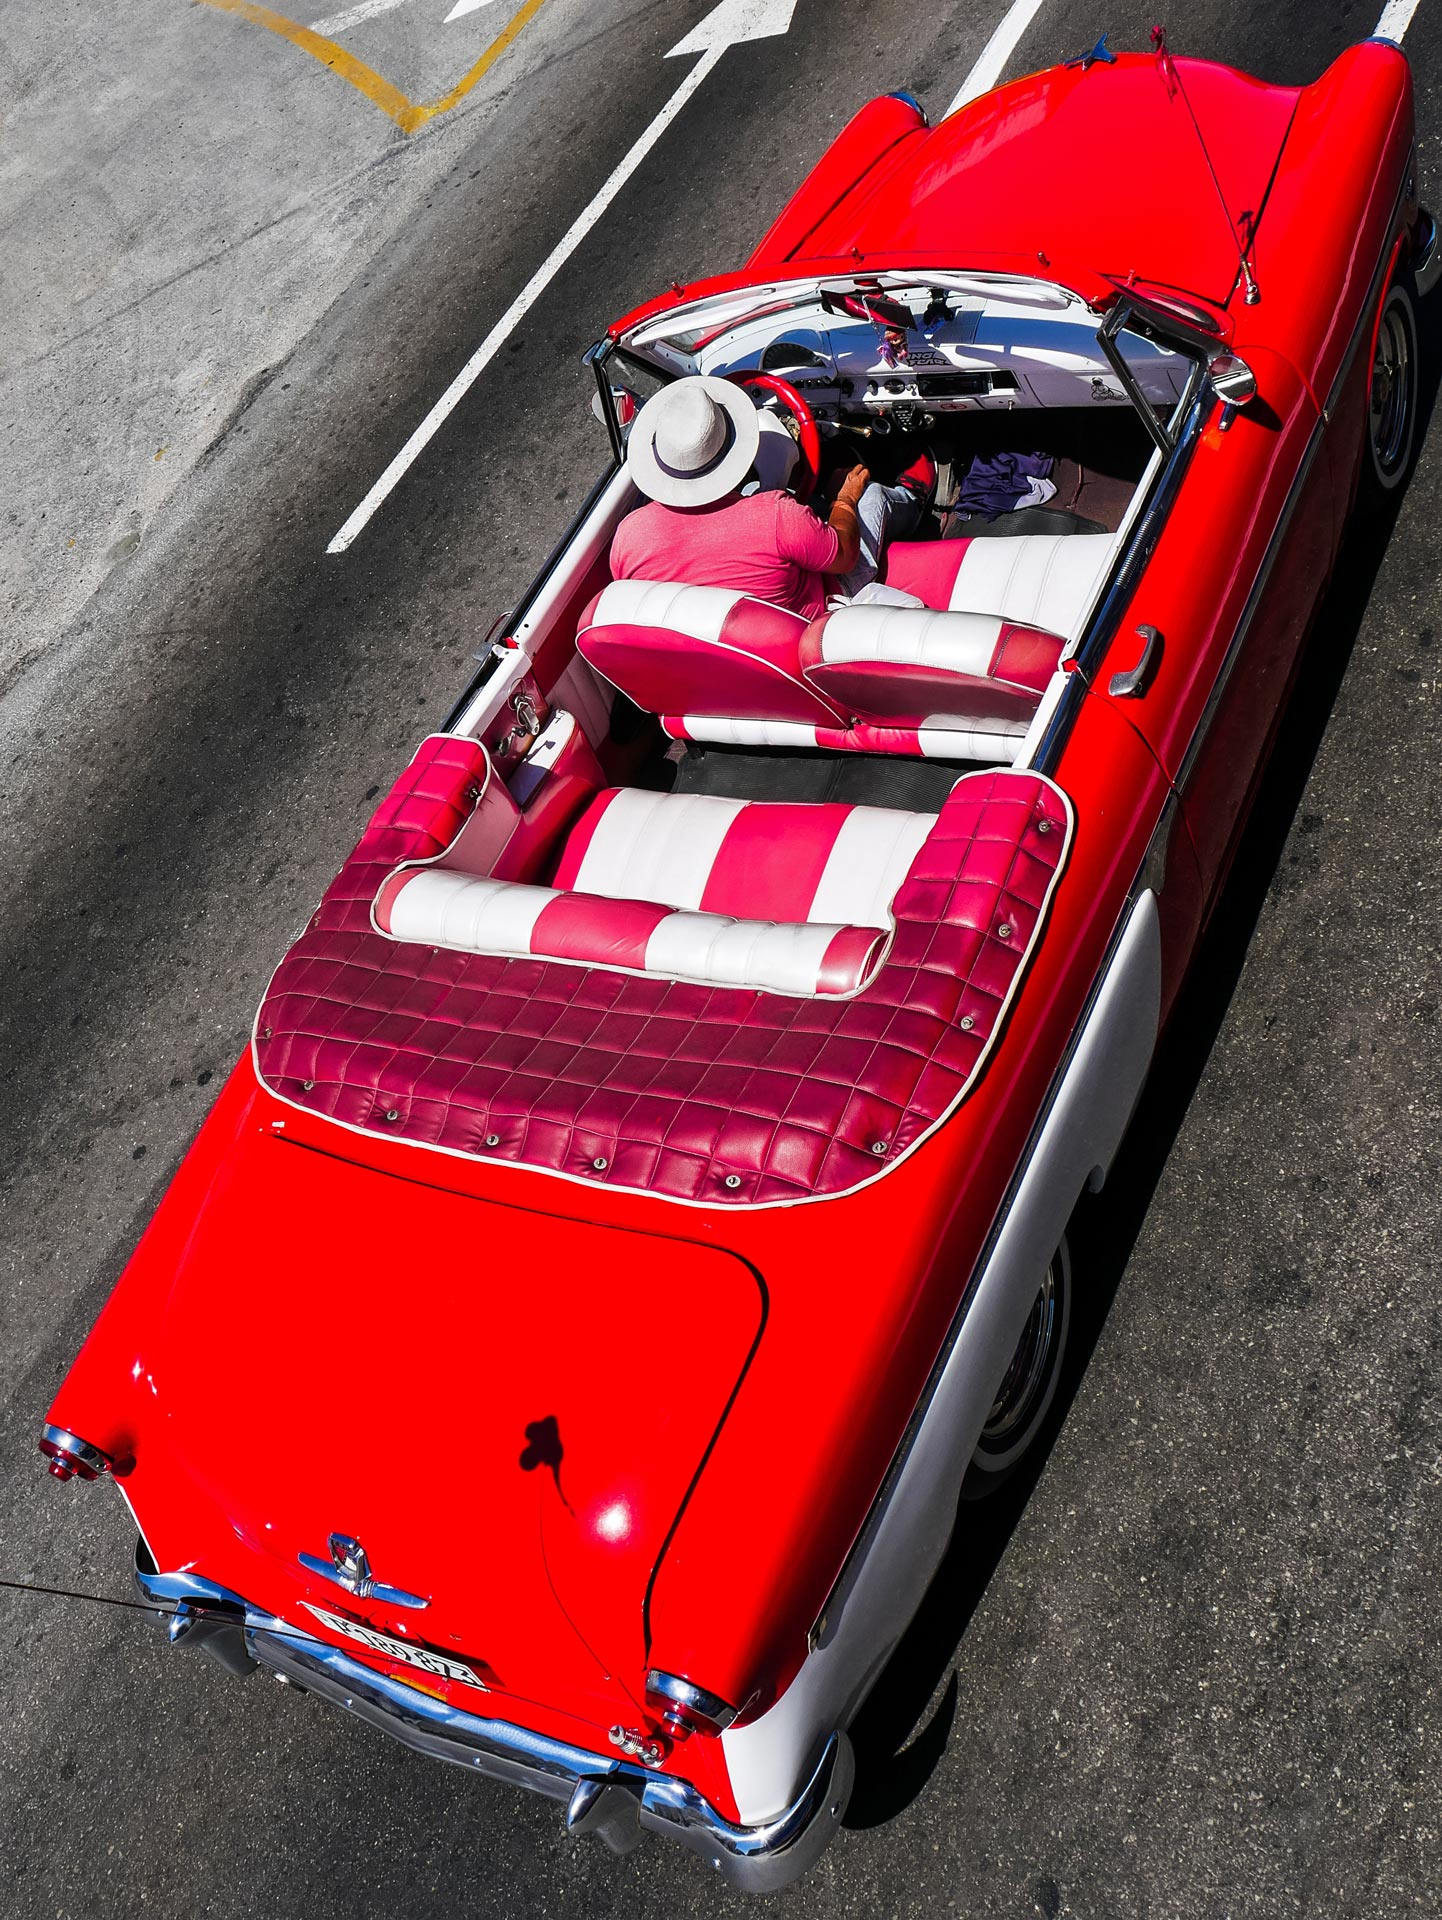 Diver with hat and outfit matching his red classic car in Havana, Cuba